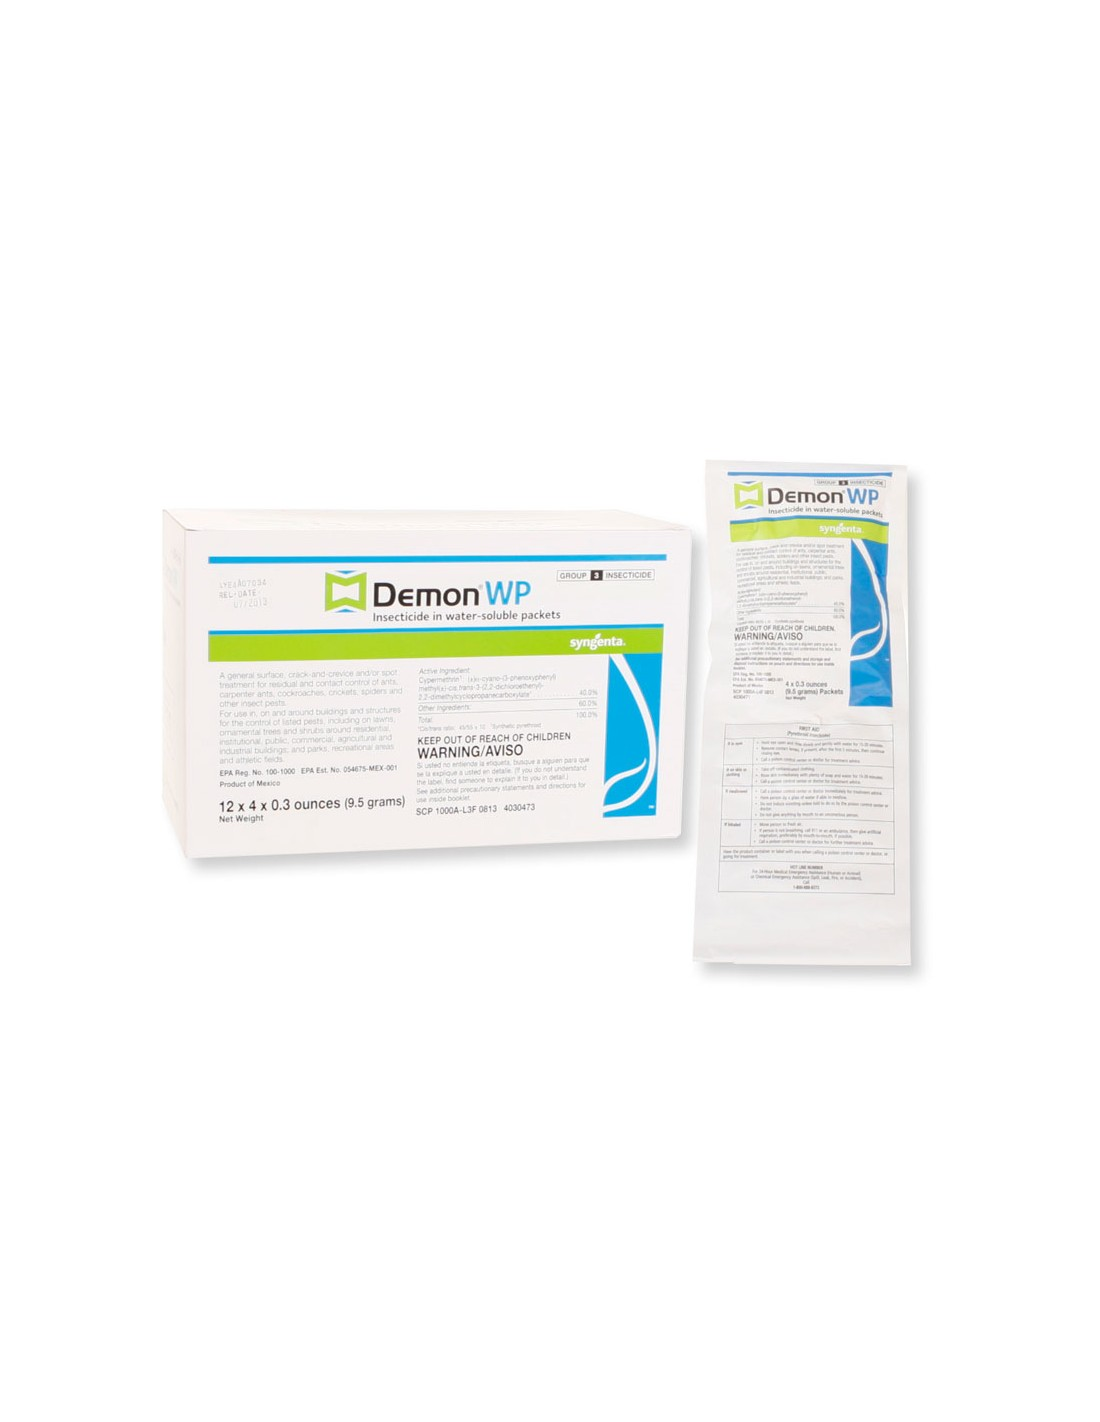 Demon WP 4 Water Soluble Sachets